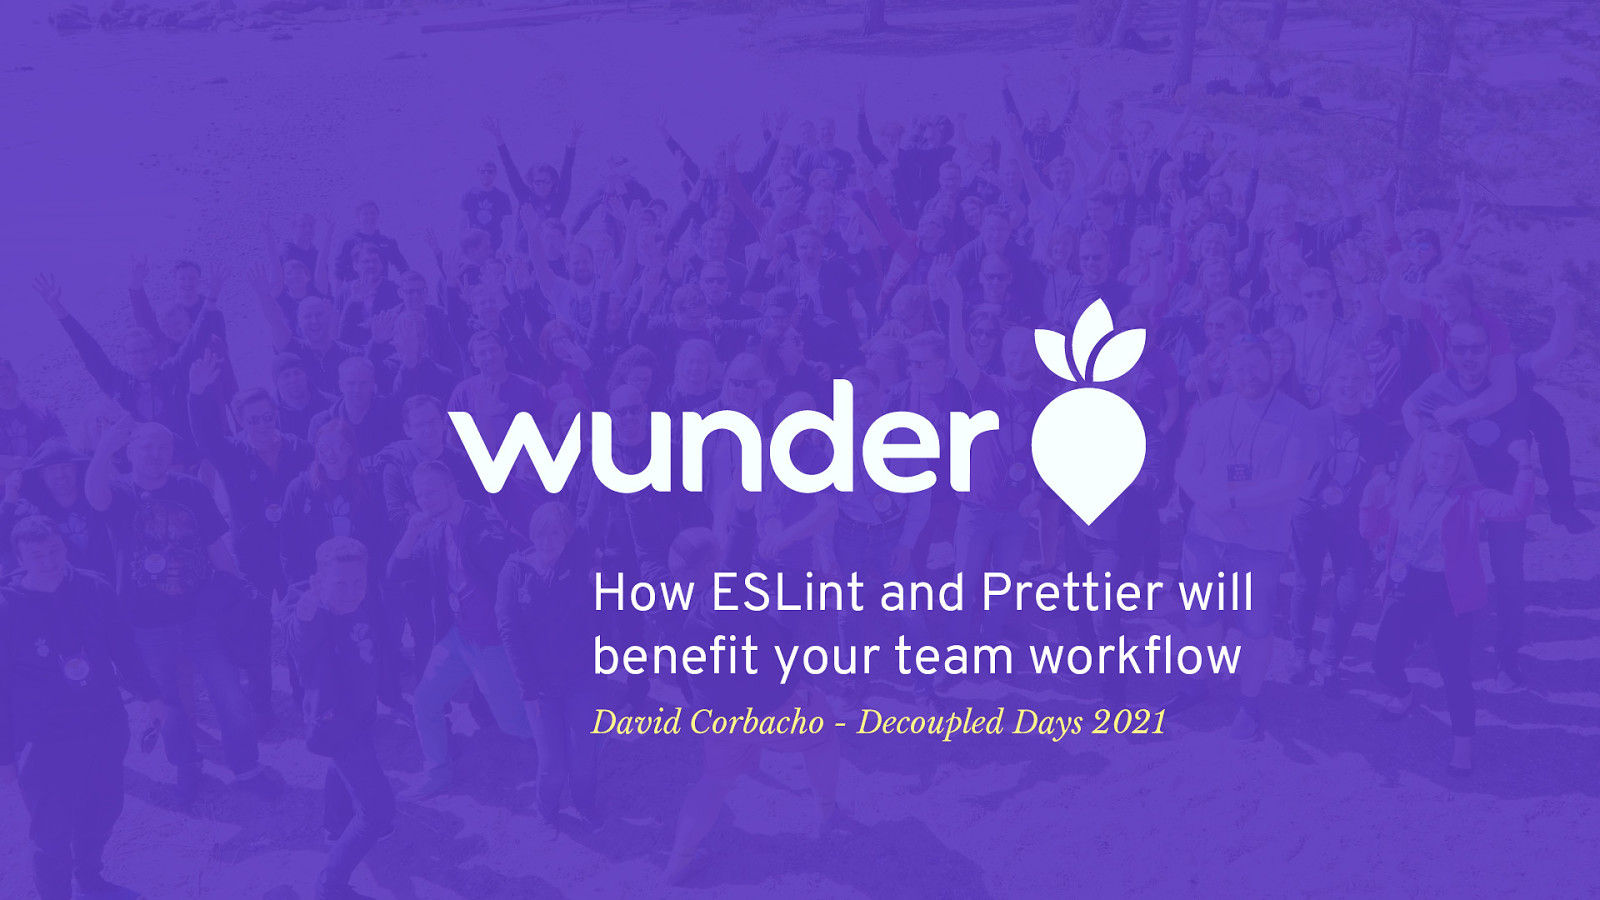 How ESLint and Prettier will benefit your team workflow